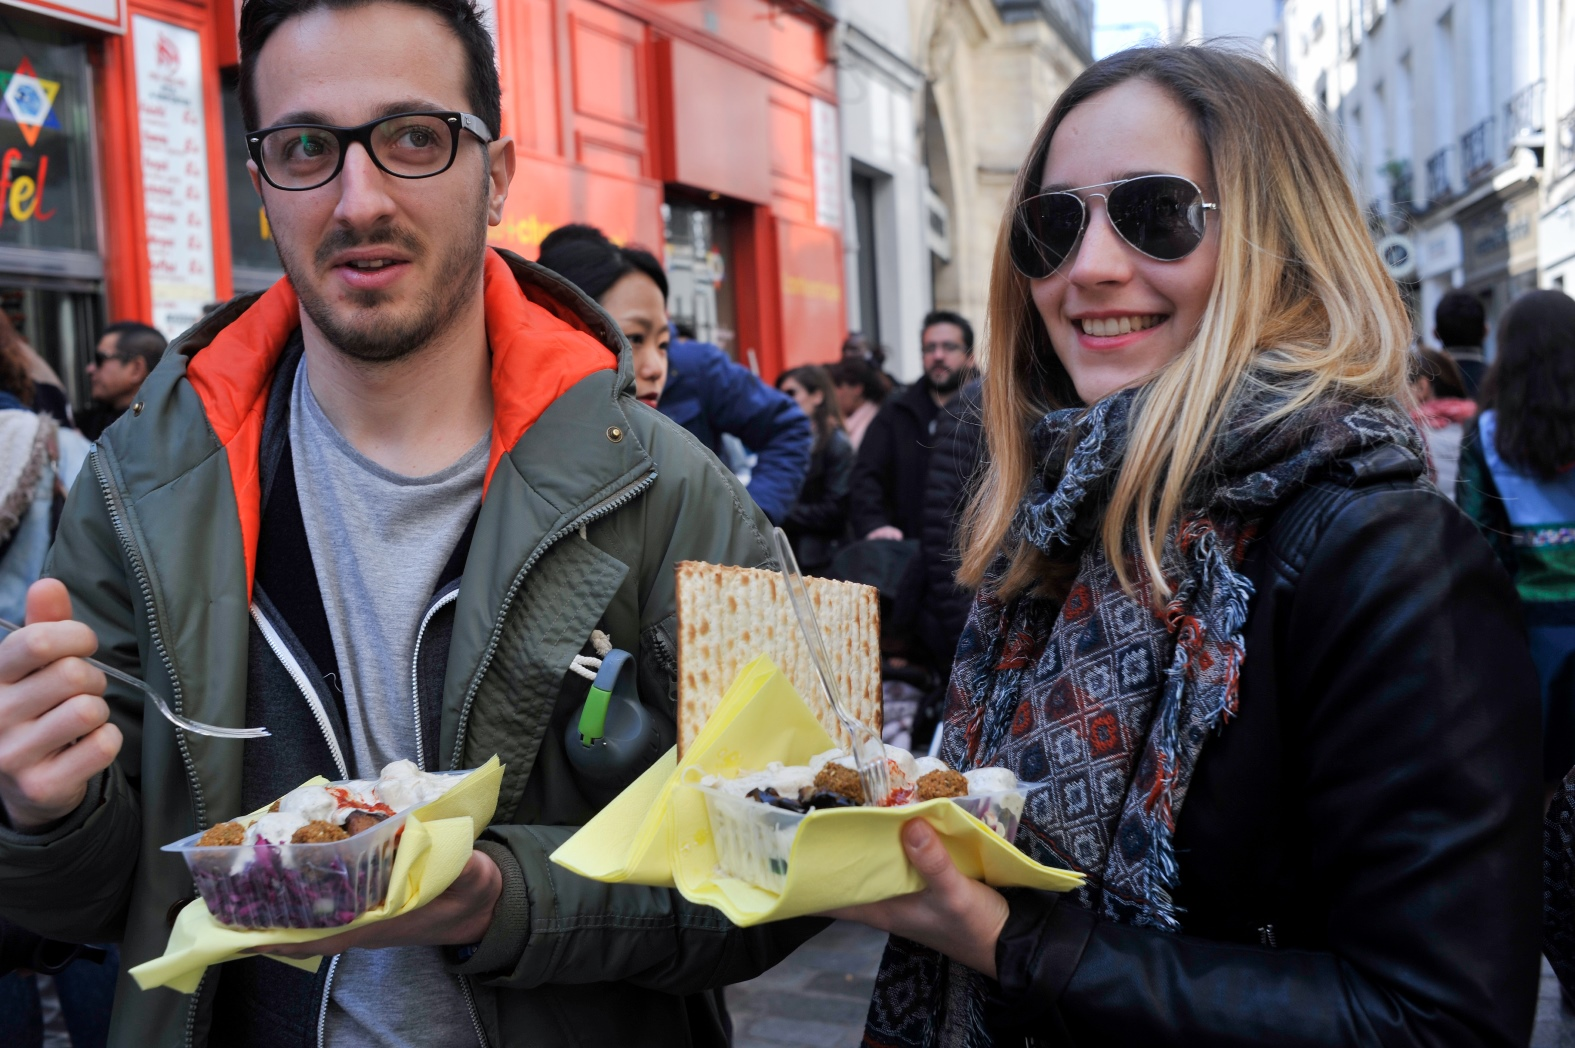 Tourists eating falafel with matzah during Passover last year in Paris. Photo by Serge Attal/FLASH90